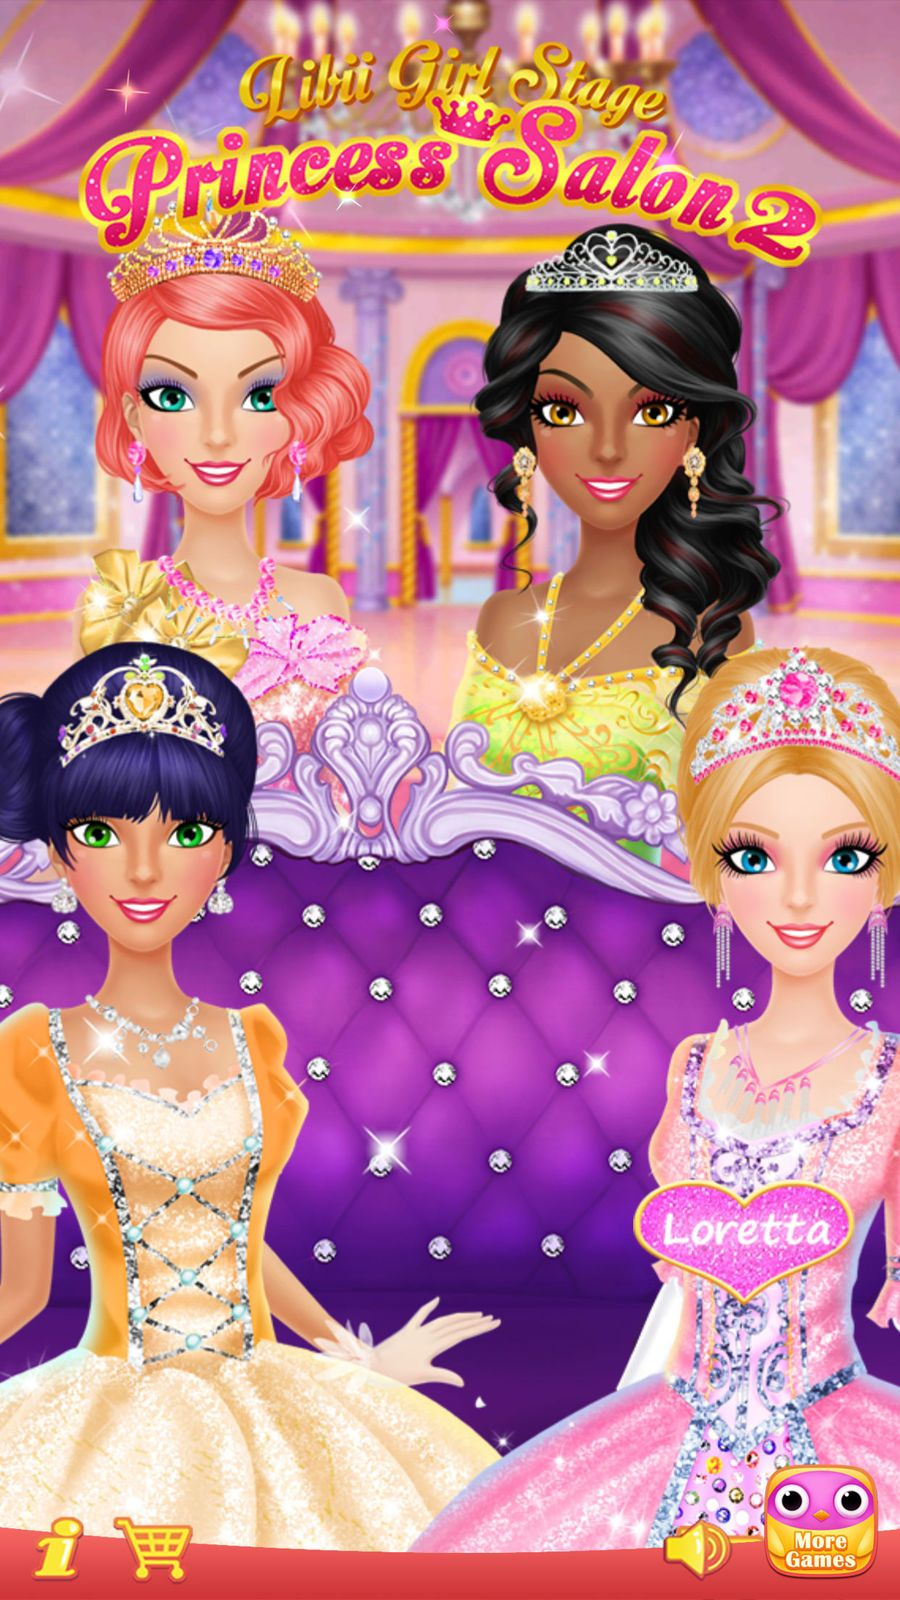 Princess Salon 2 Makeup Dressup Spa And Makeover Girls Beauty Salon Games Libii Games Beauty Family Beauty Salon Games Beauty Girl Princess